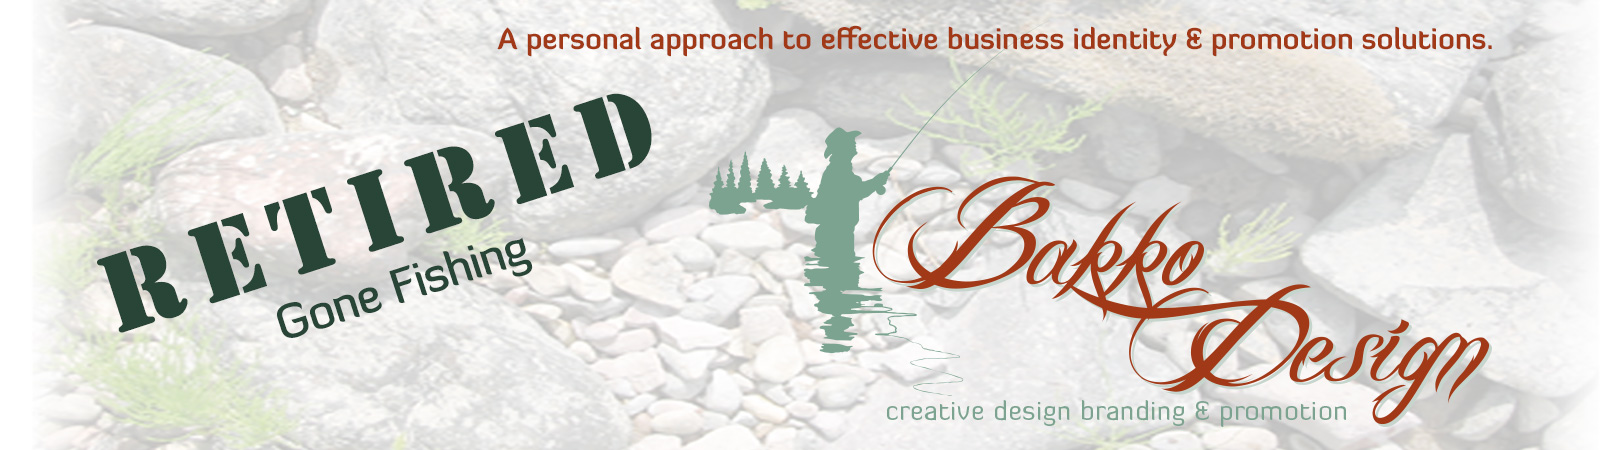 Bakko Design - Billings Montana